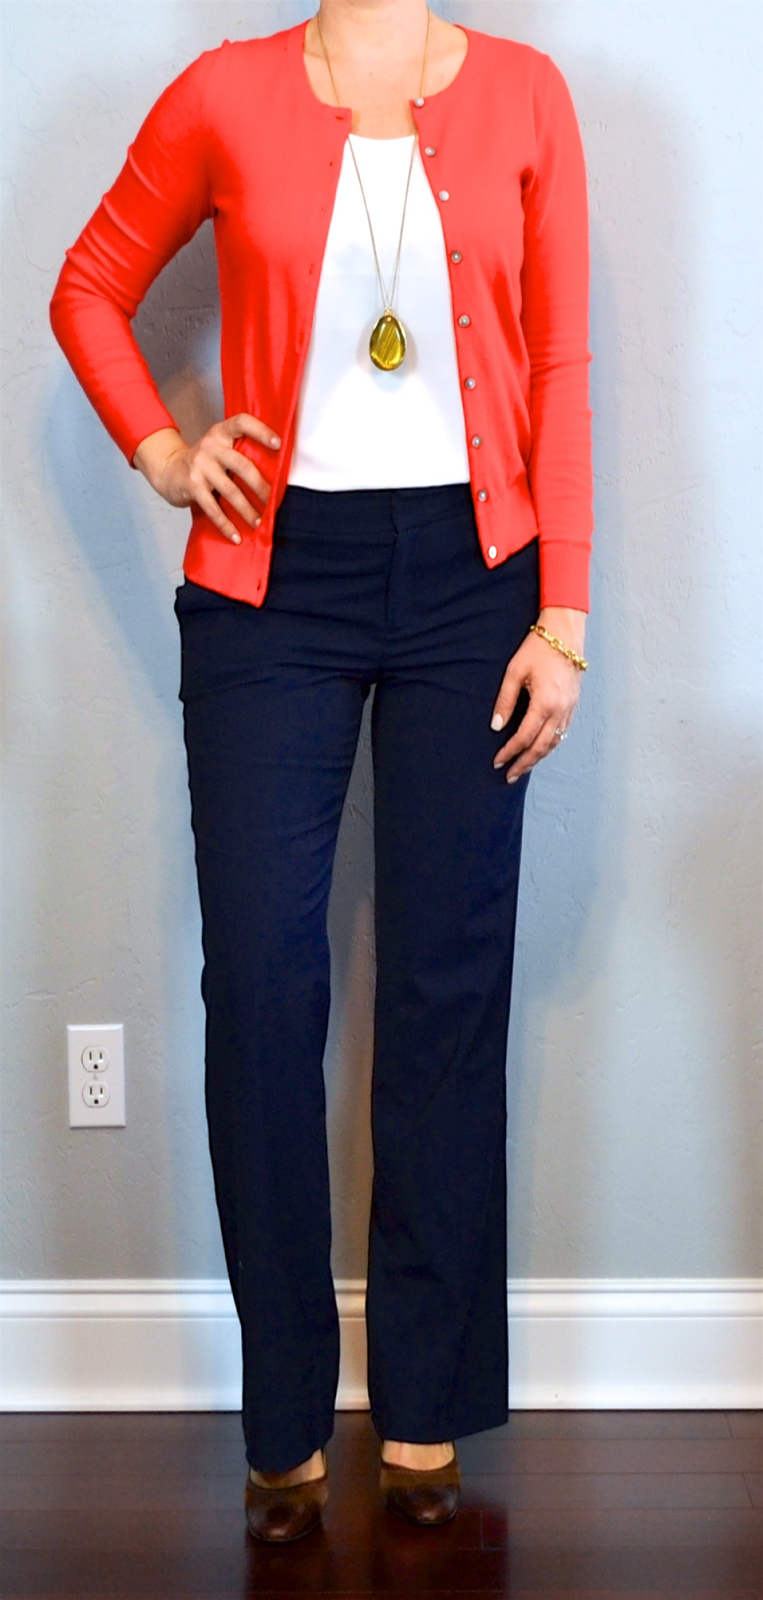 Amazing  To Wear Red Pants Outfits At Work  Page 8 Of 9  Womenoutfitscom